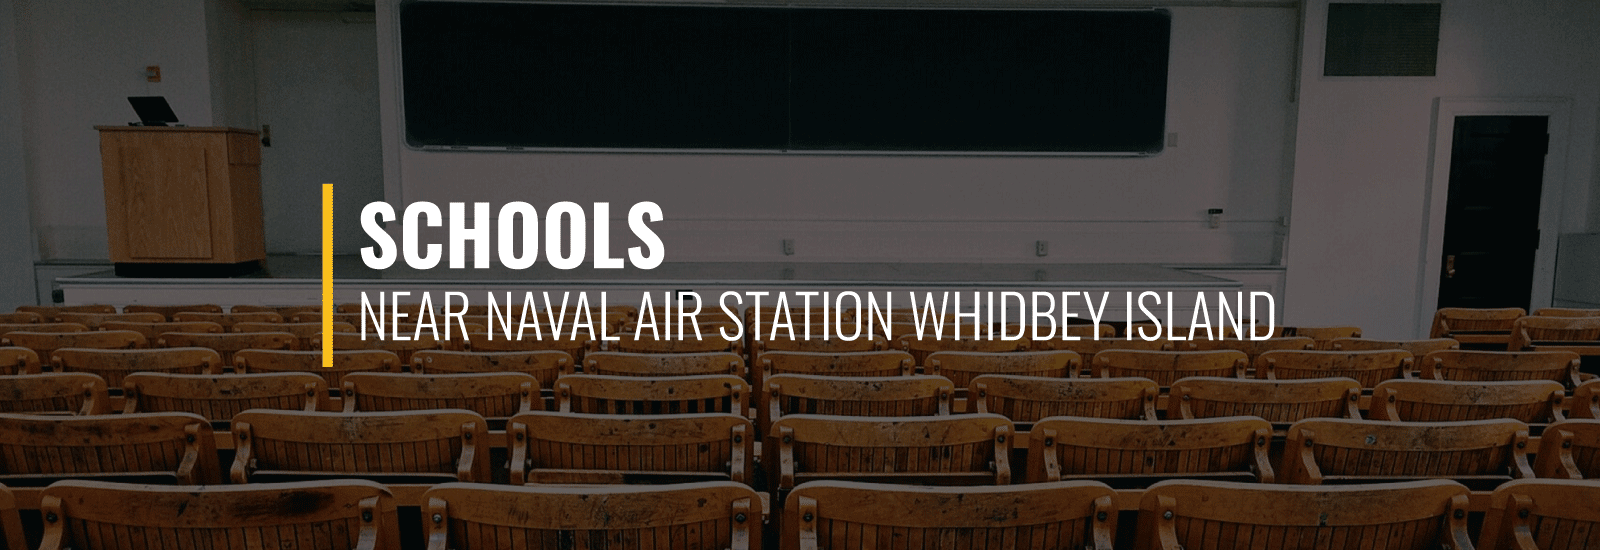 NAS Whidbey Schools